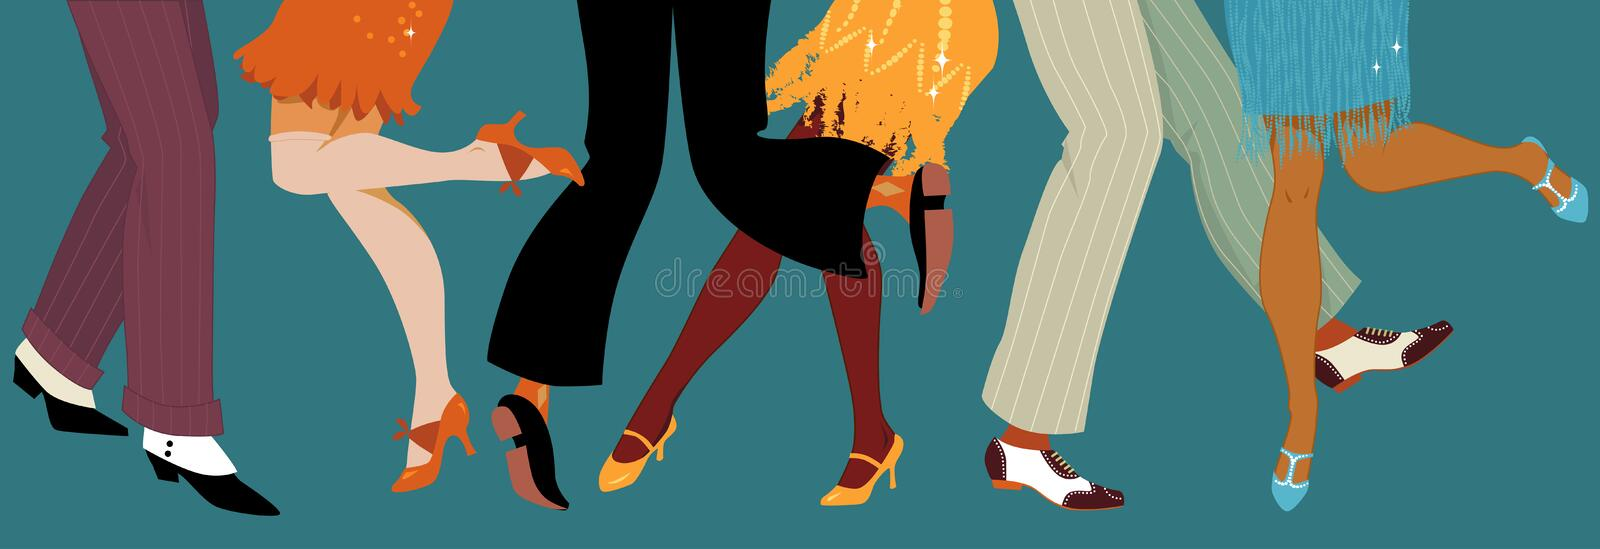 1920s style party royalty free illustration